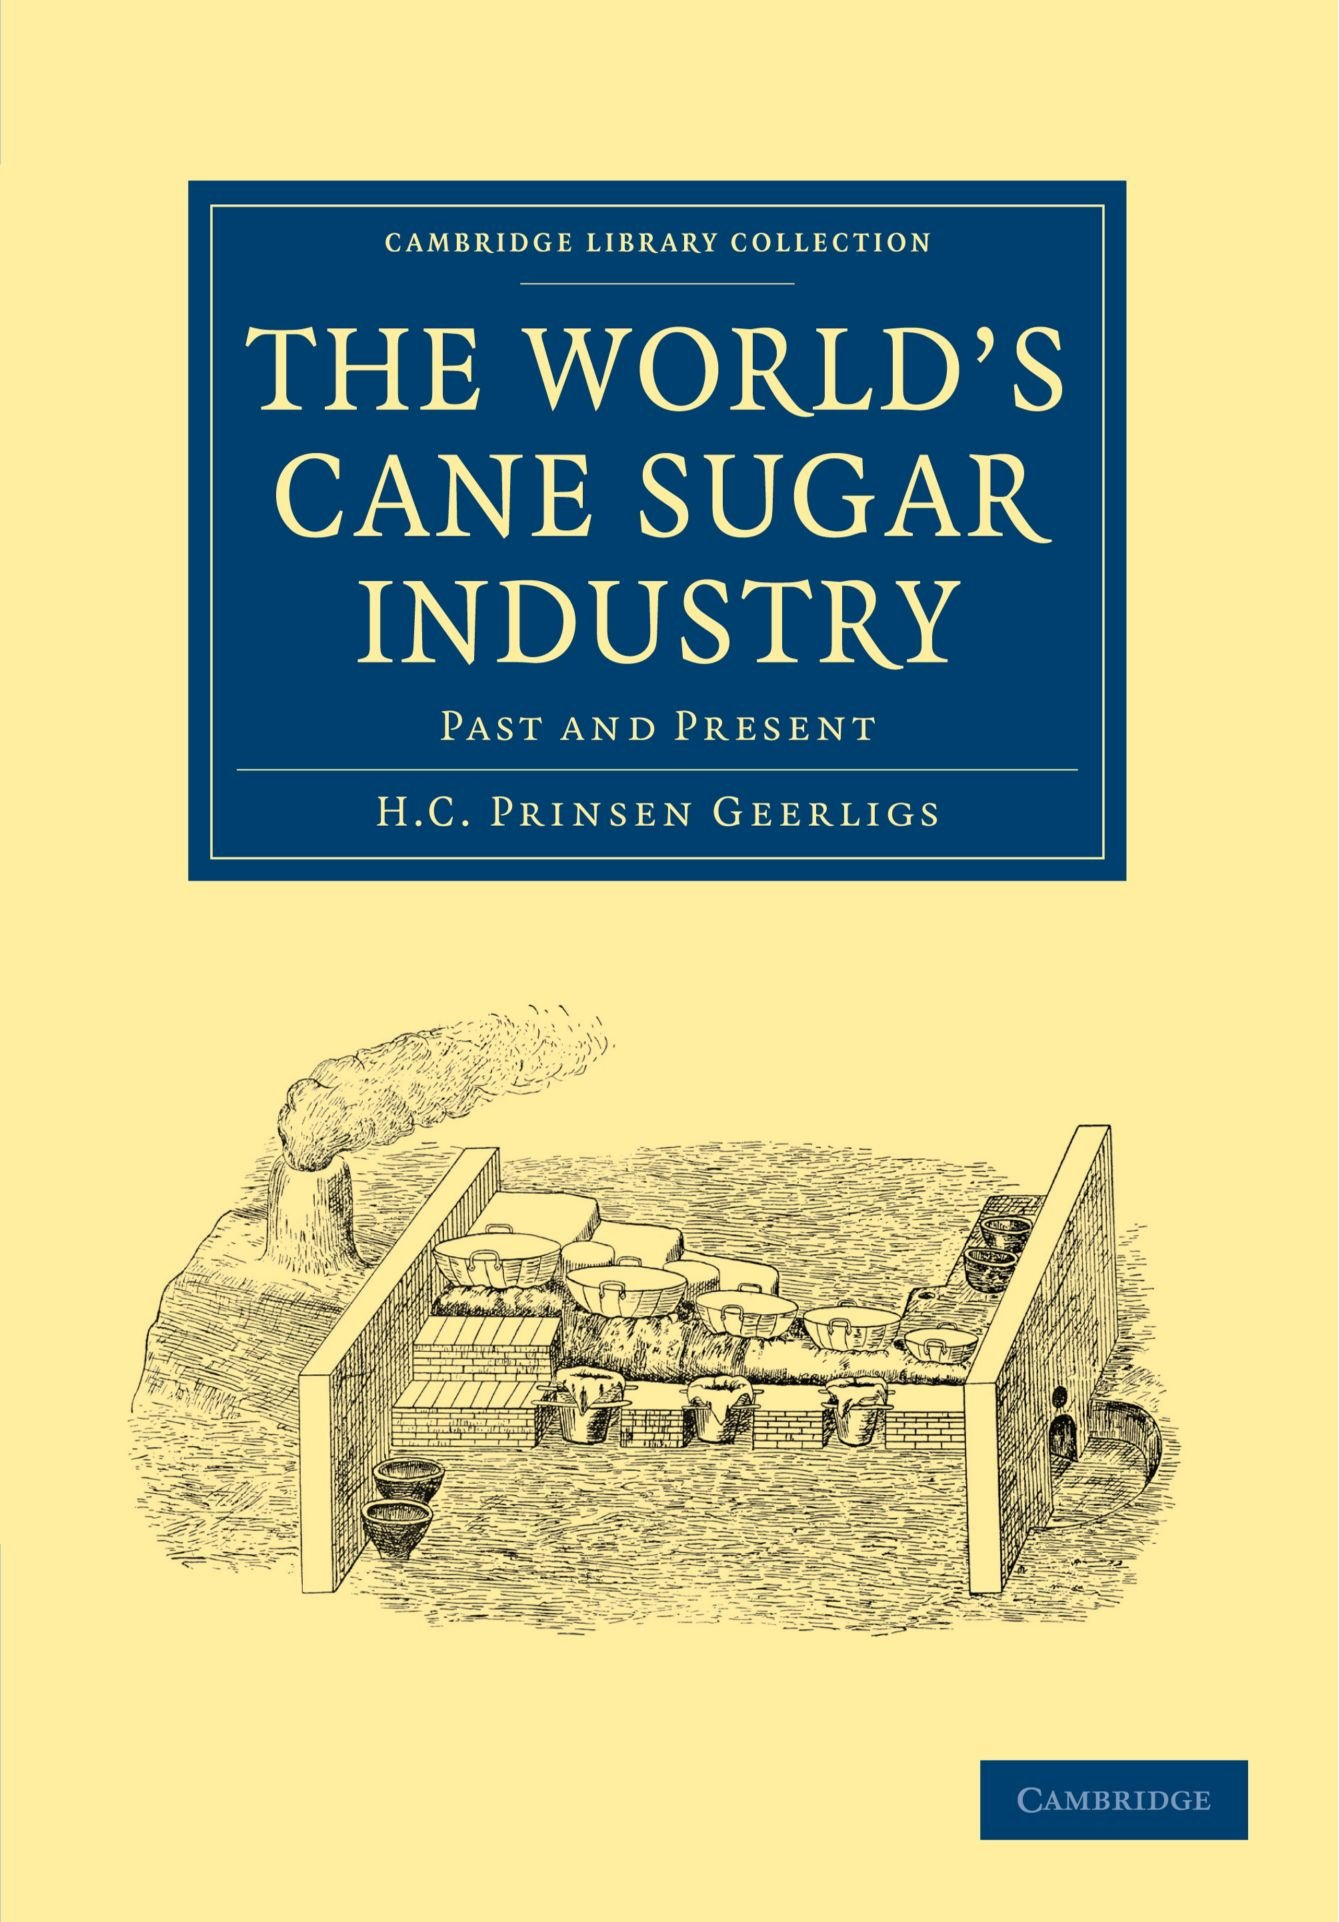 Download The World's Cane Sugar Industry: Past and Present (Cambridge Library Collection - Latin American Studies) pdf